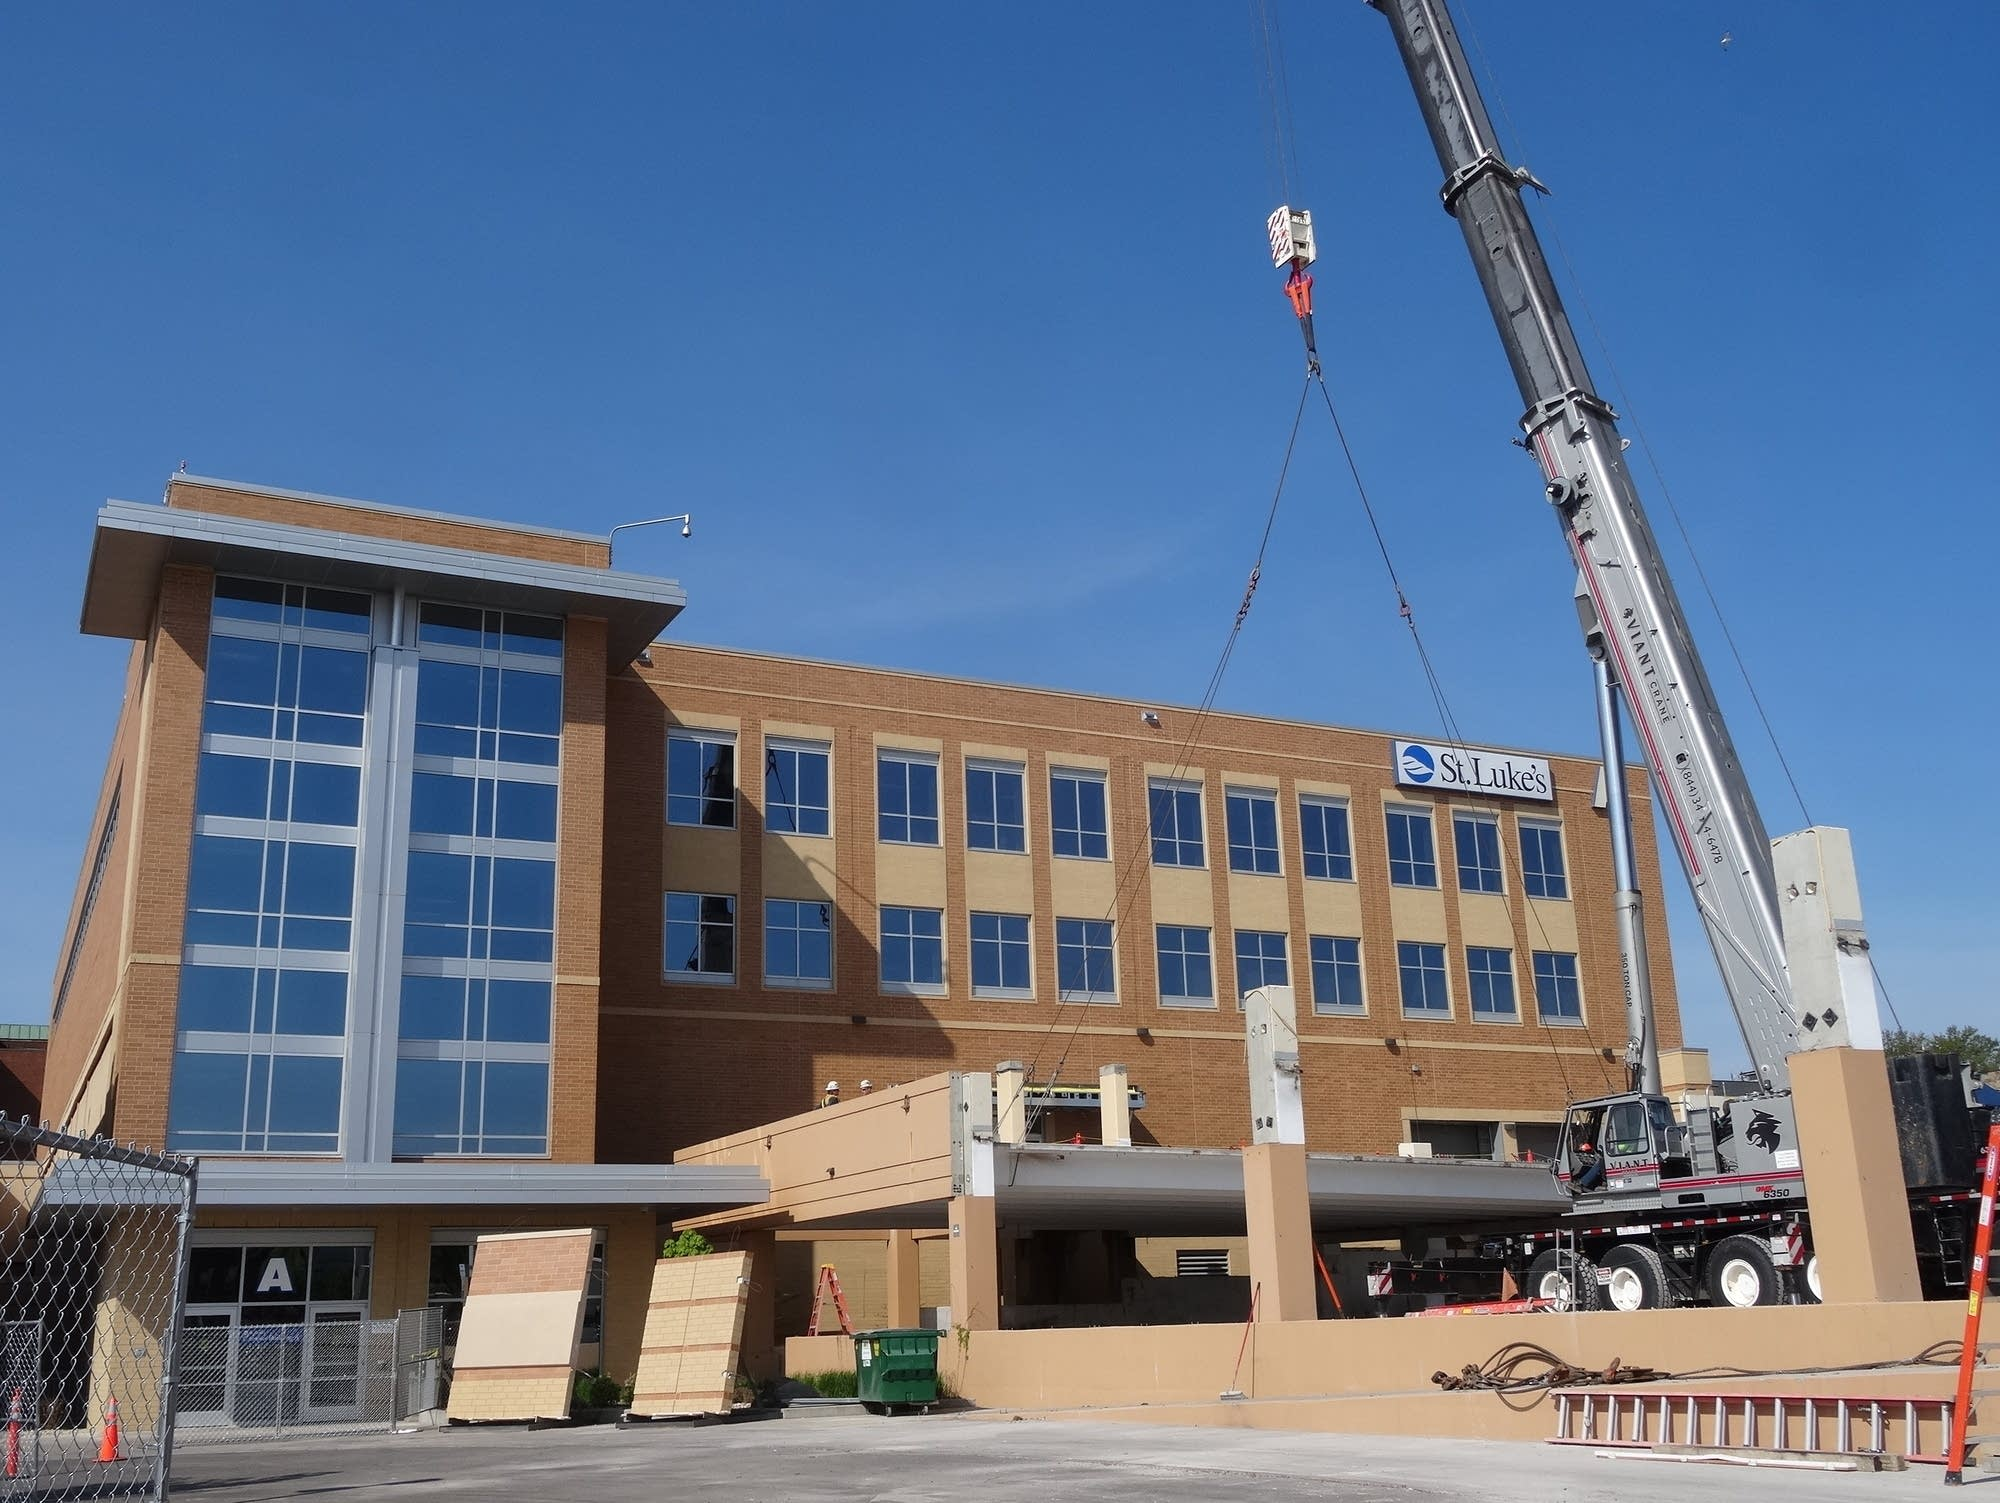 Construction is underway on the first phase of St. Luke's expansion plan.